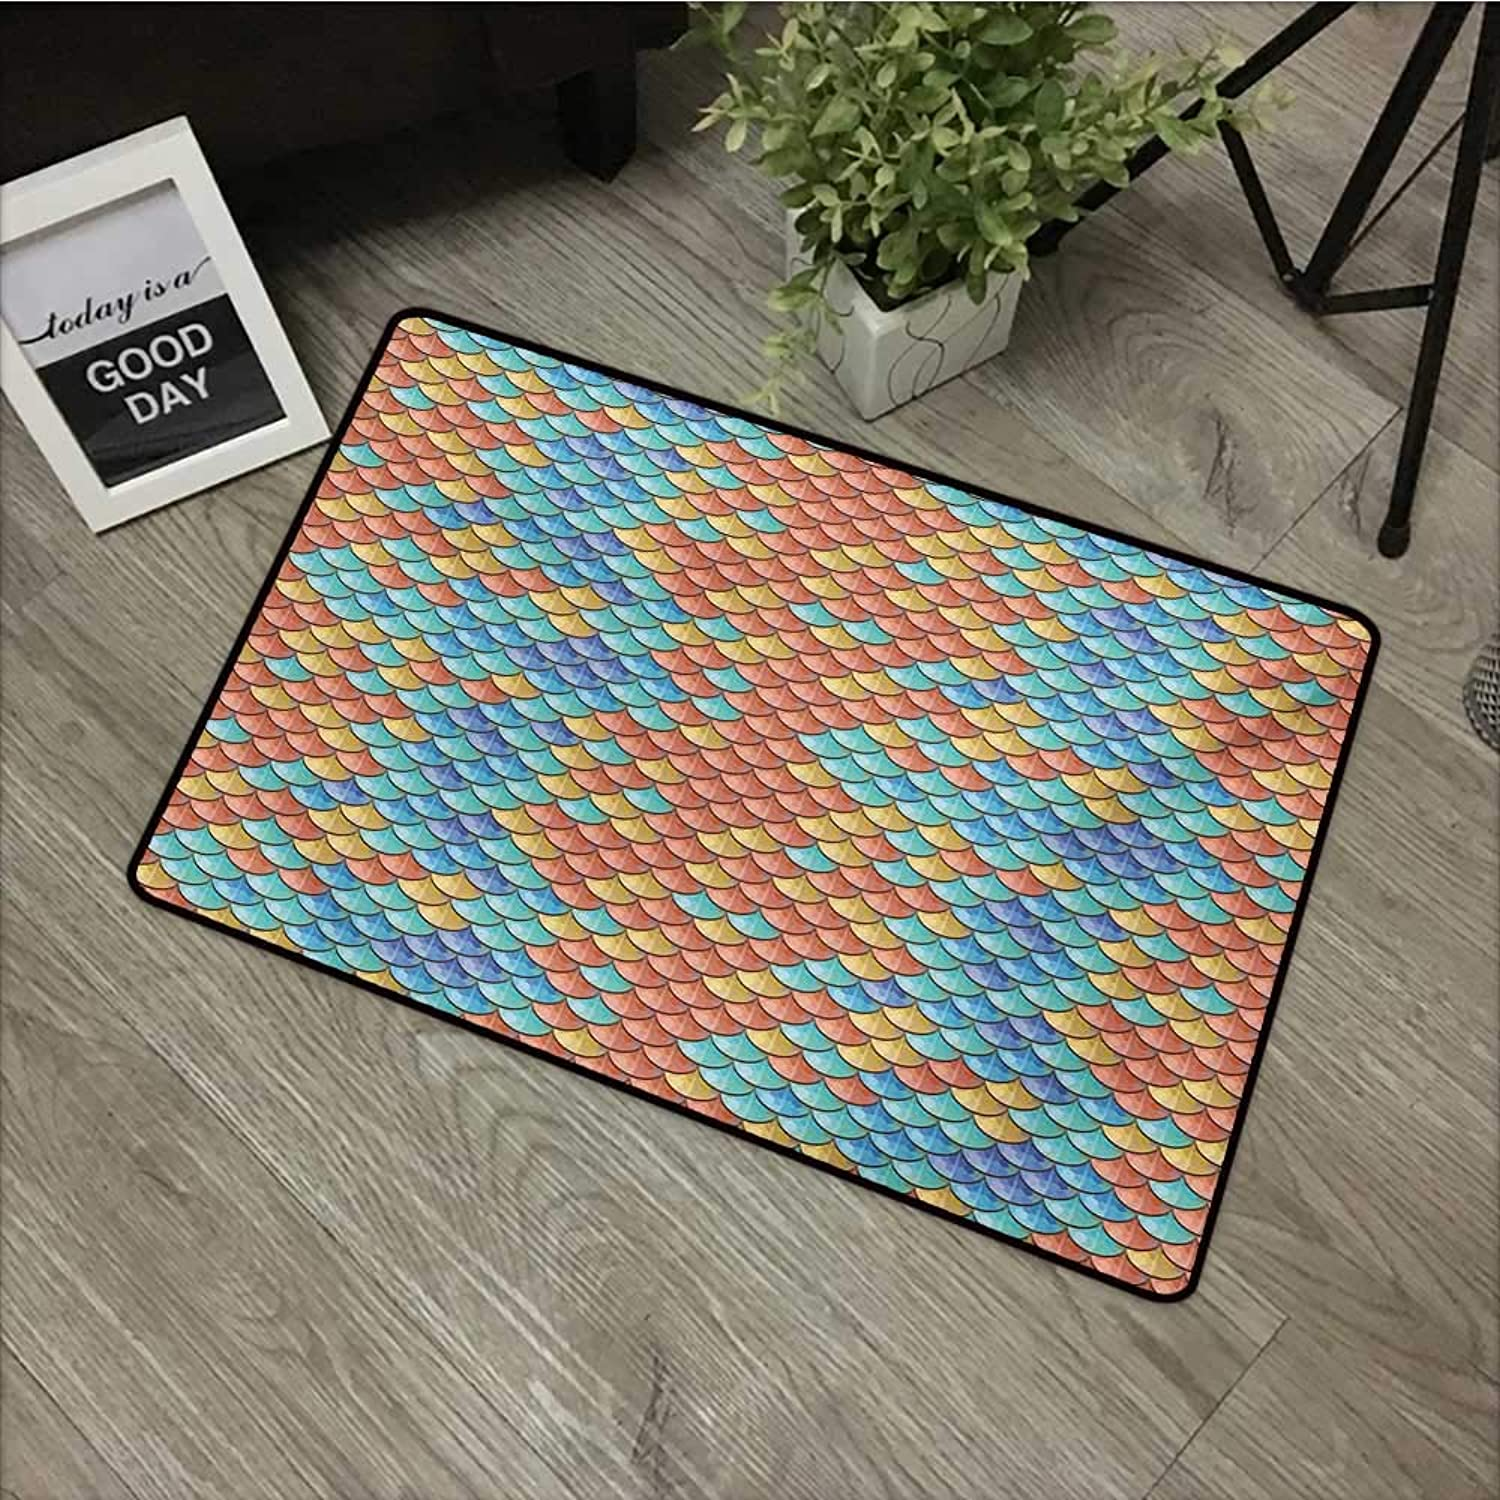 Pad W24 x L35 INCH Fish,Maritime Animal Scales Pattern Abstract Geometric Half Circles Mermaid Tail Design,Multicolor with Non-Slip Backing Door Mat Carpet